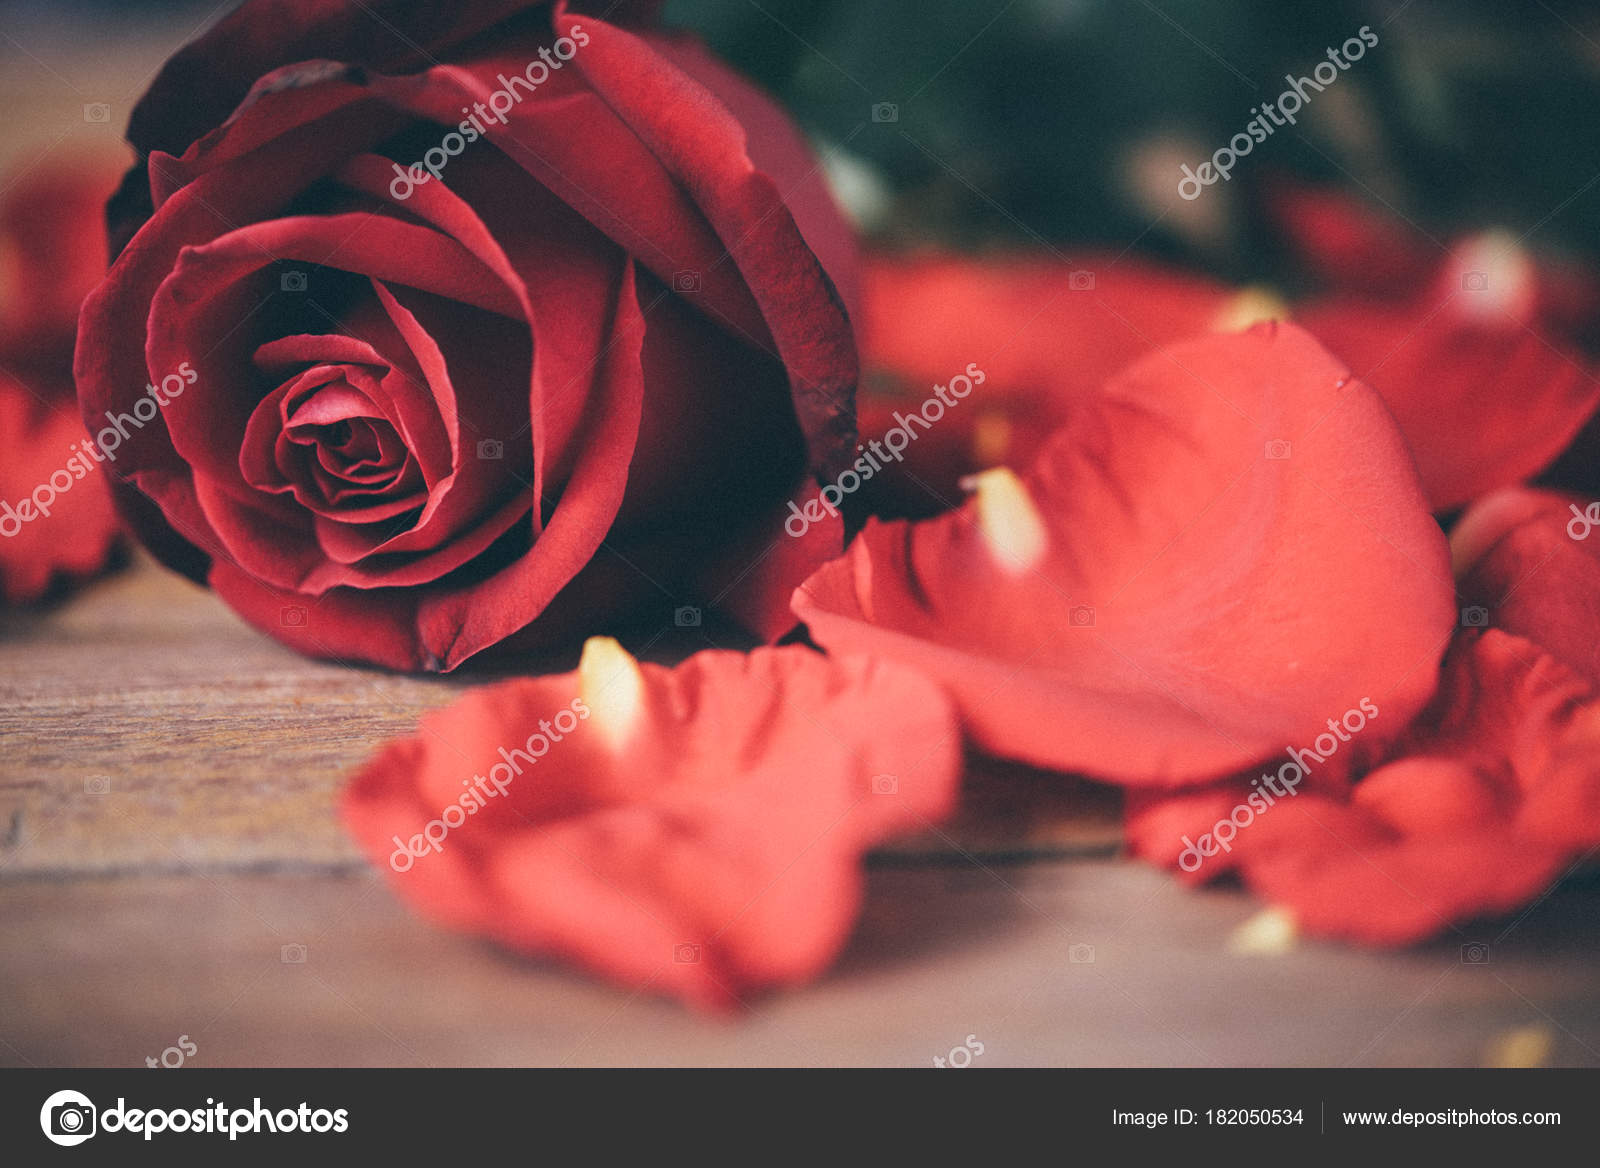 Red rose flower nature beautiful flowers garden petal red rose red rose flower nature beautiful flowers from the garden and petal of red rose flower for valentines on wooden floor with copy space in valentines day izmirmasajfo